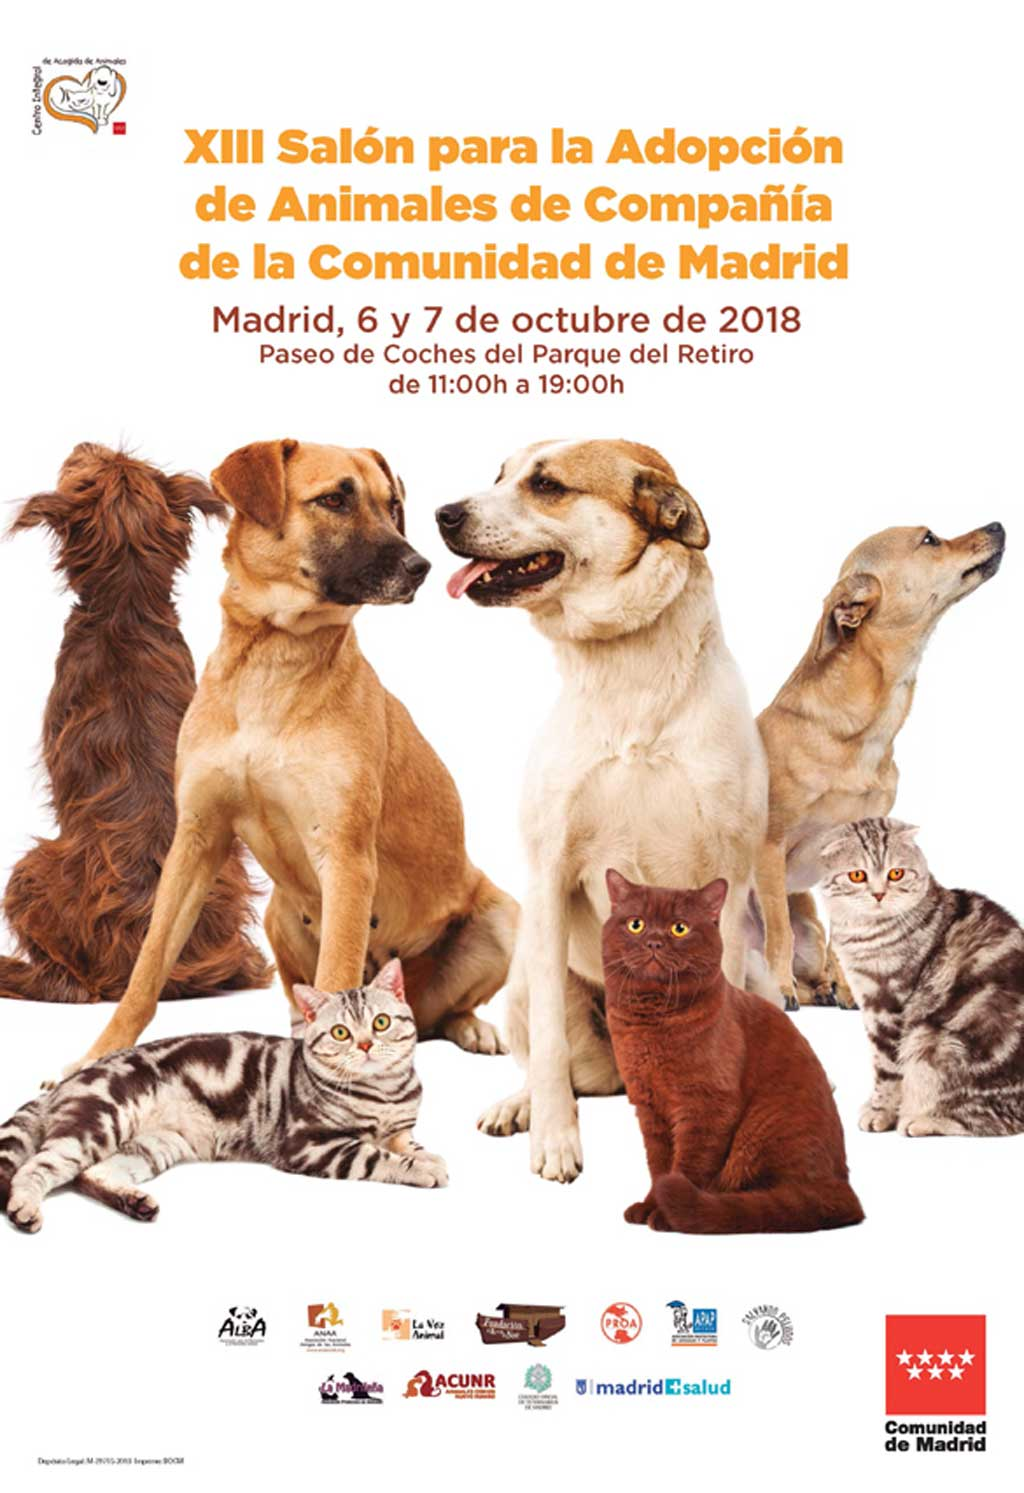 XIII Hall for the Adoption of Companion Animals of the Community of Madrid